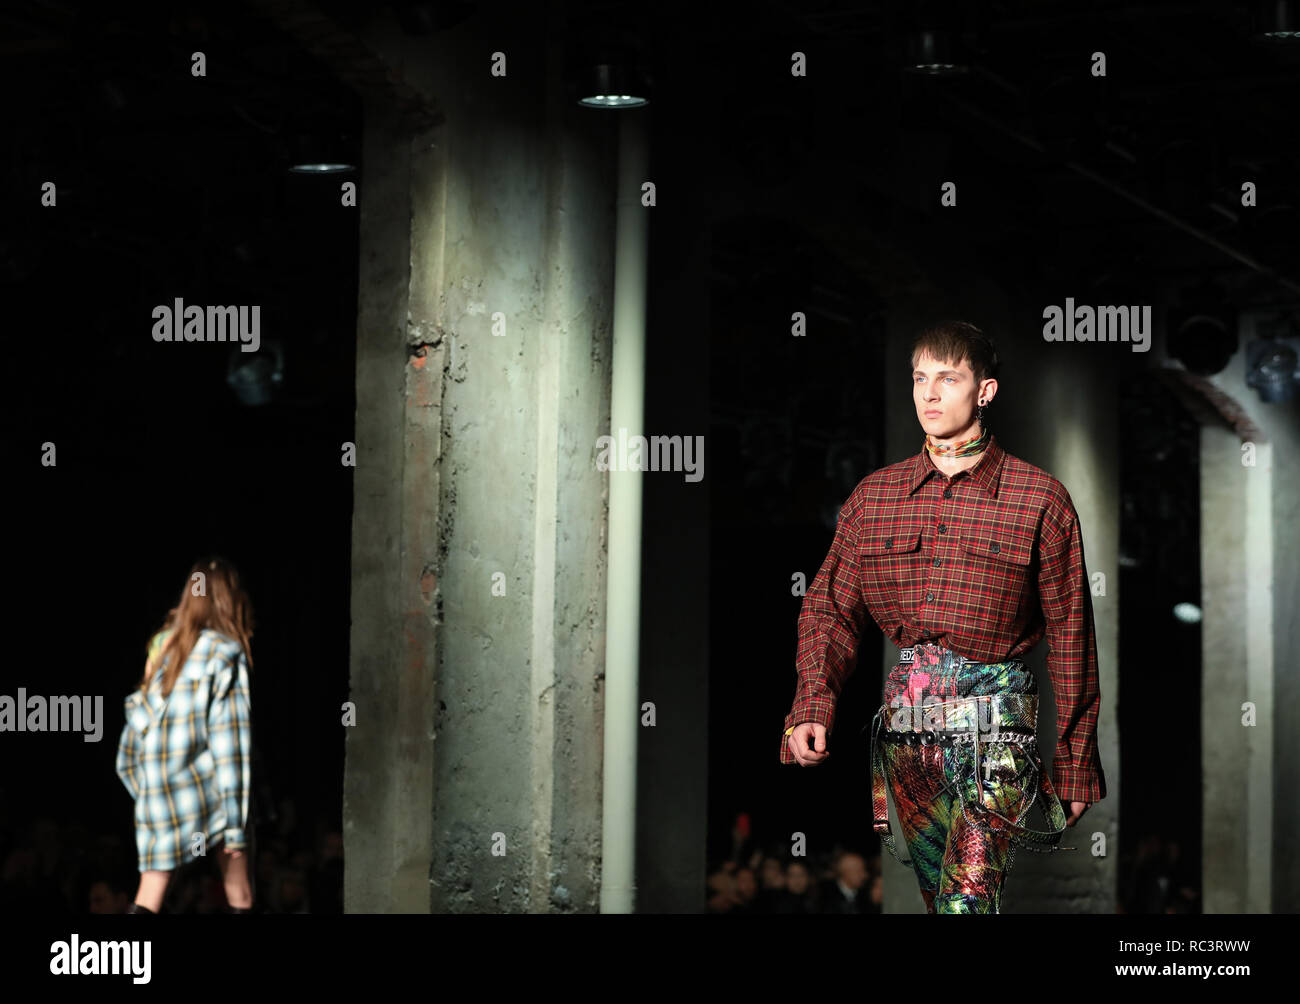 Milan, Italy. 13th Jan, 2019. Models present creations for Dsquared2 during Milan Men's Fashion Week in Milan, Italy, on Jan. 13, 2019. Credit: Cheng Tingting/Xinhua/Alamy Live News Stock Photo